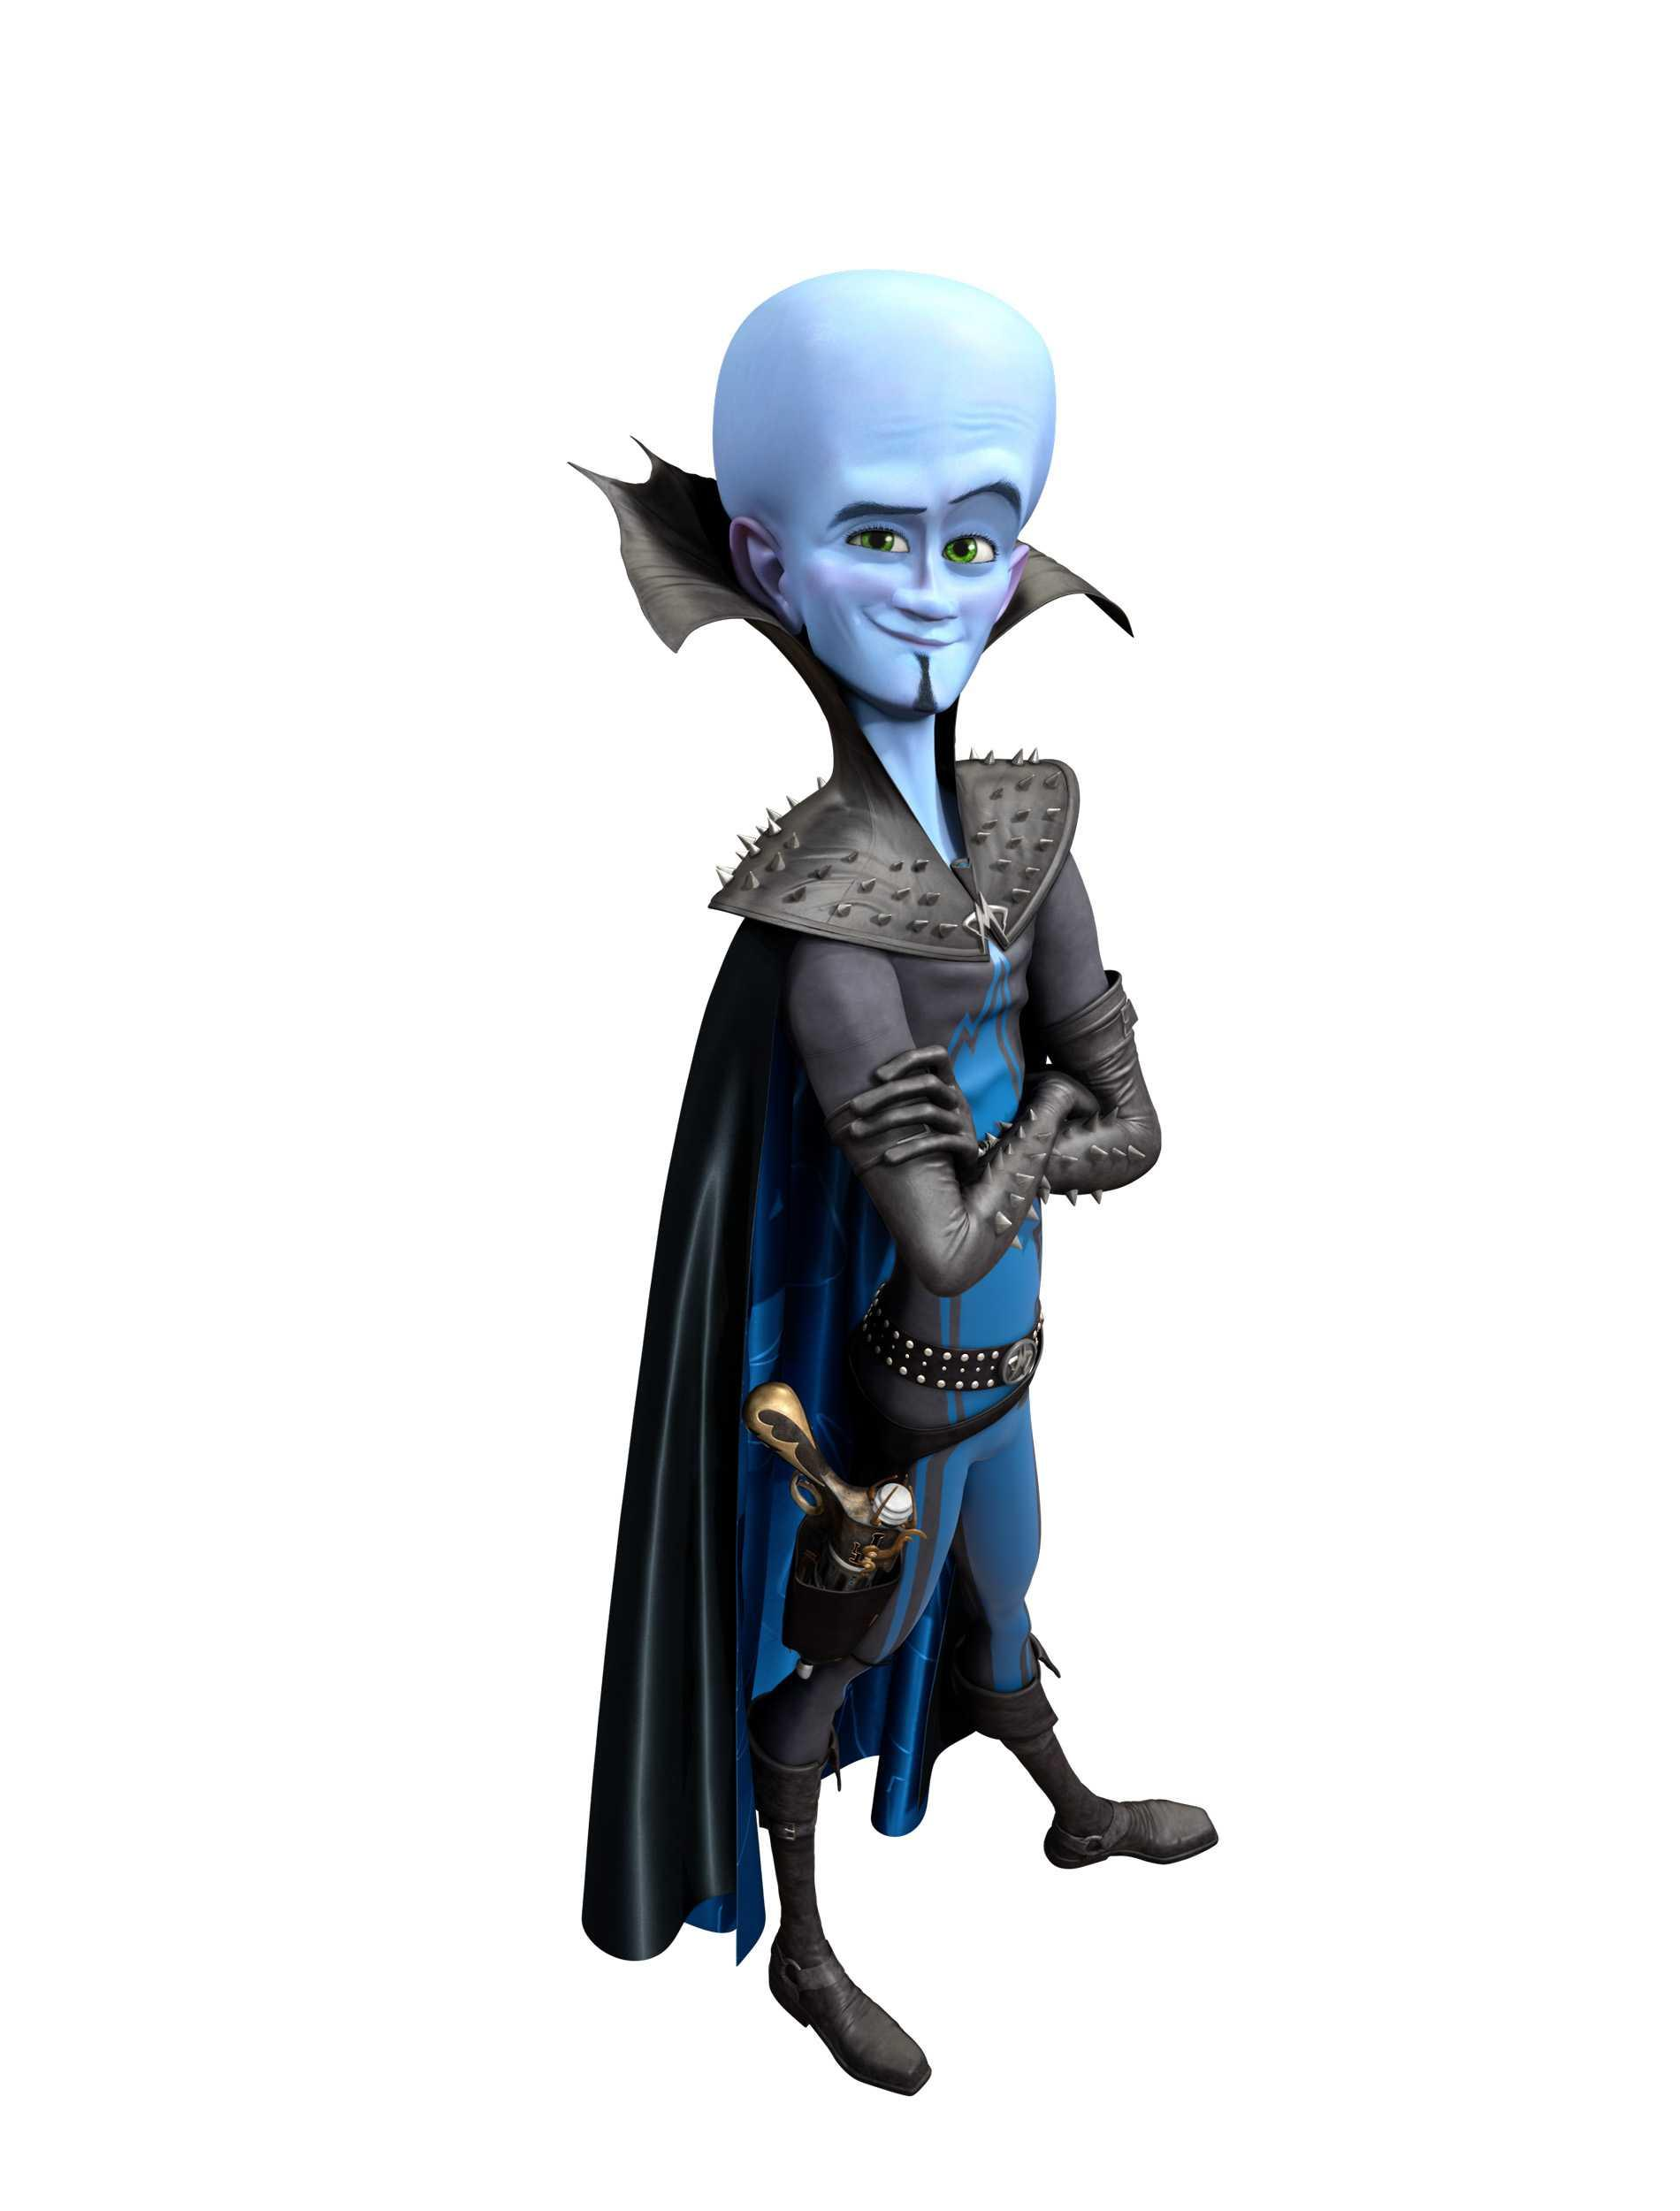 Kyle home dreamworks animation wiki fandom powered by wikia - Sinister Megamind